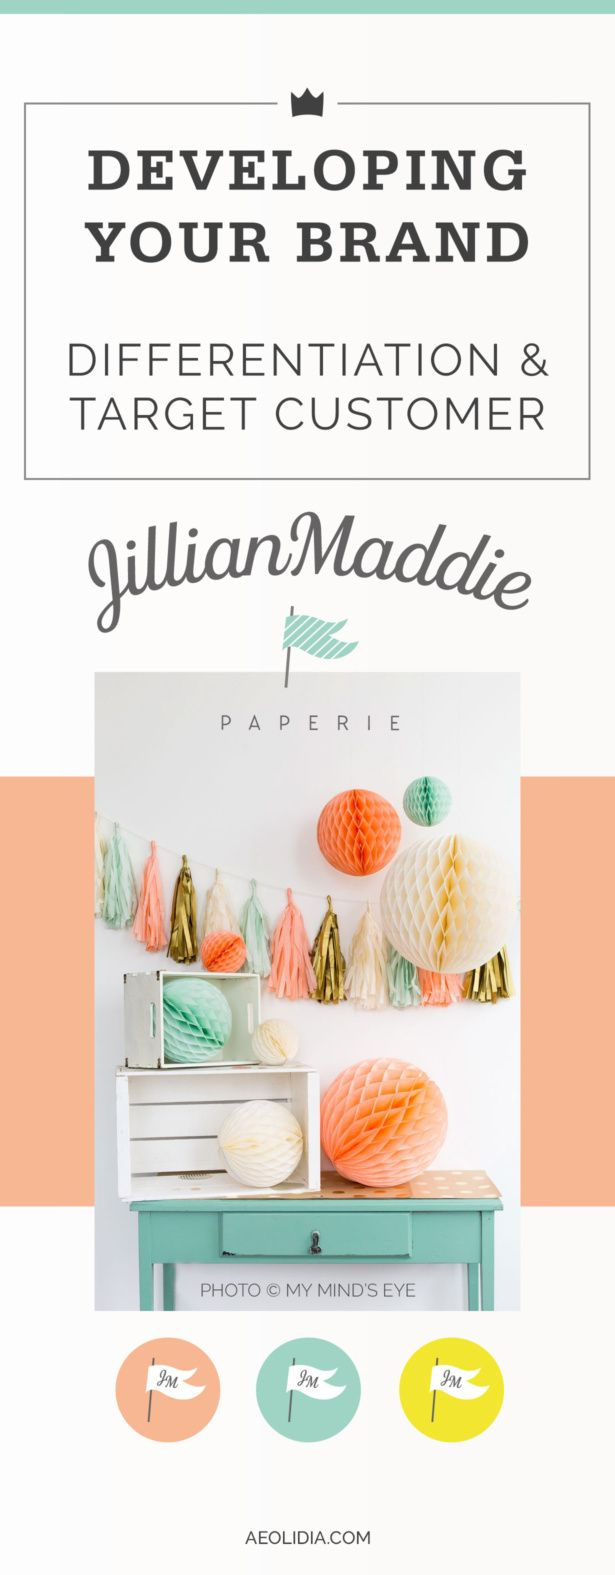 JillianMaddie Paperie is a new paper, packaging and party supply business. We…